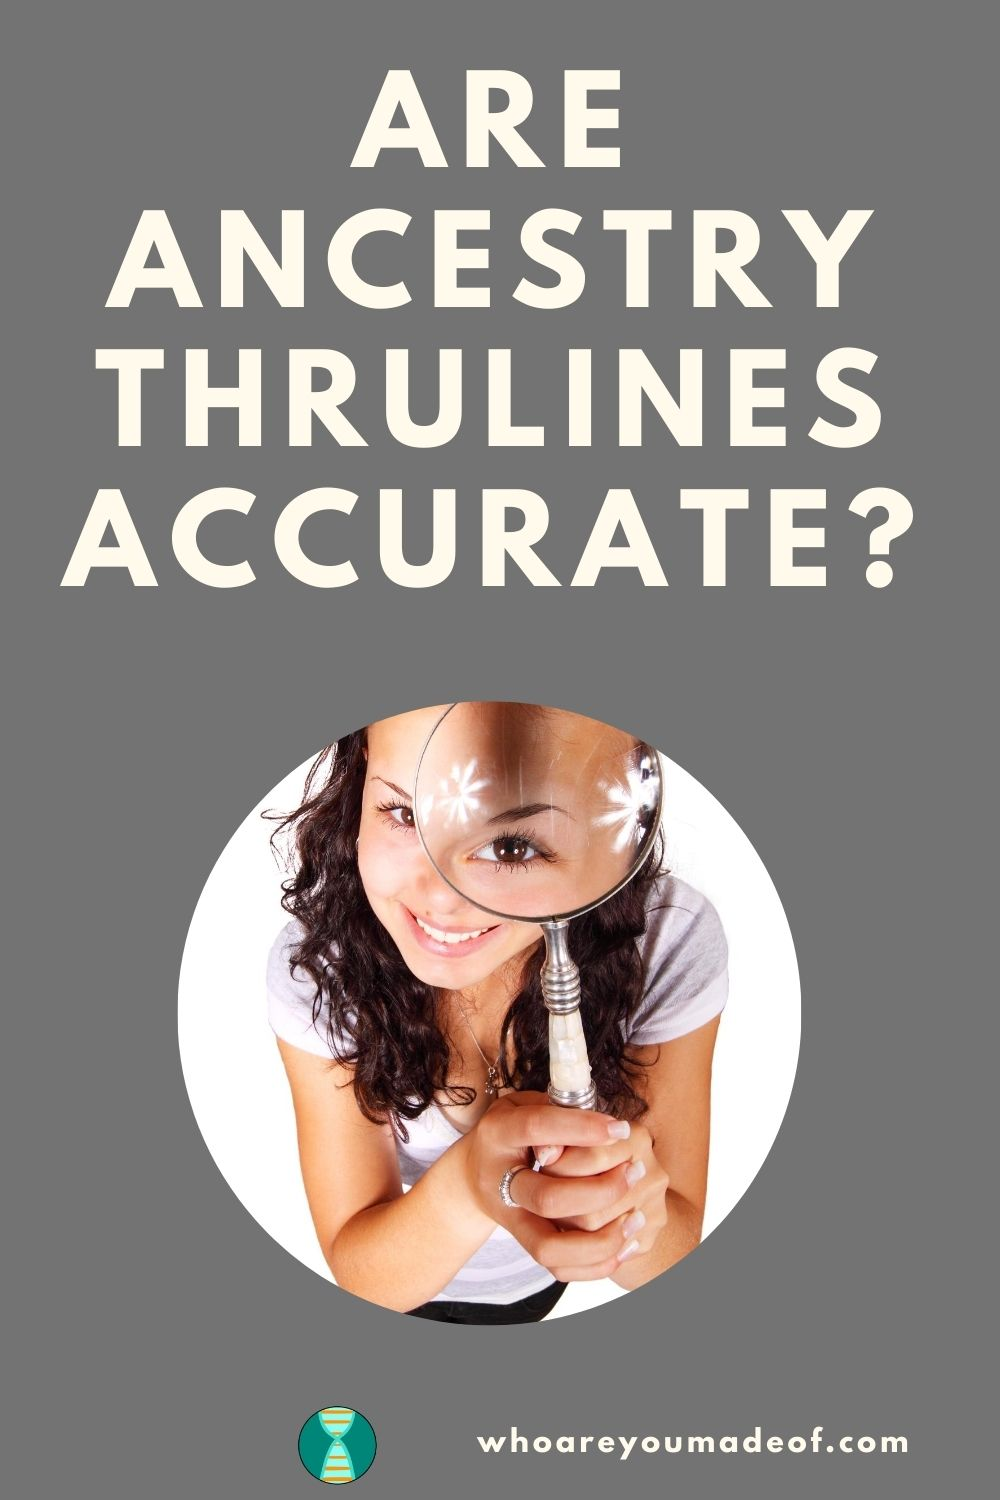 Are Ancestry ThruLines Accurate Pinterest image with woman looking through magnifying glass